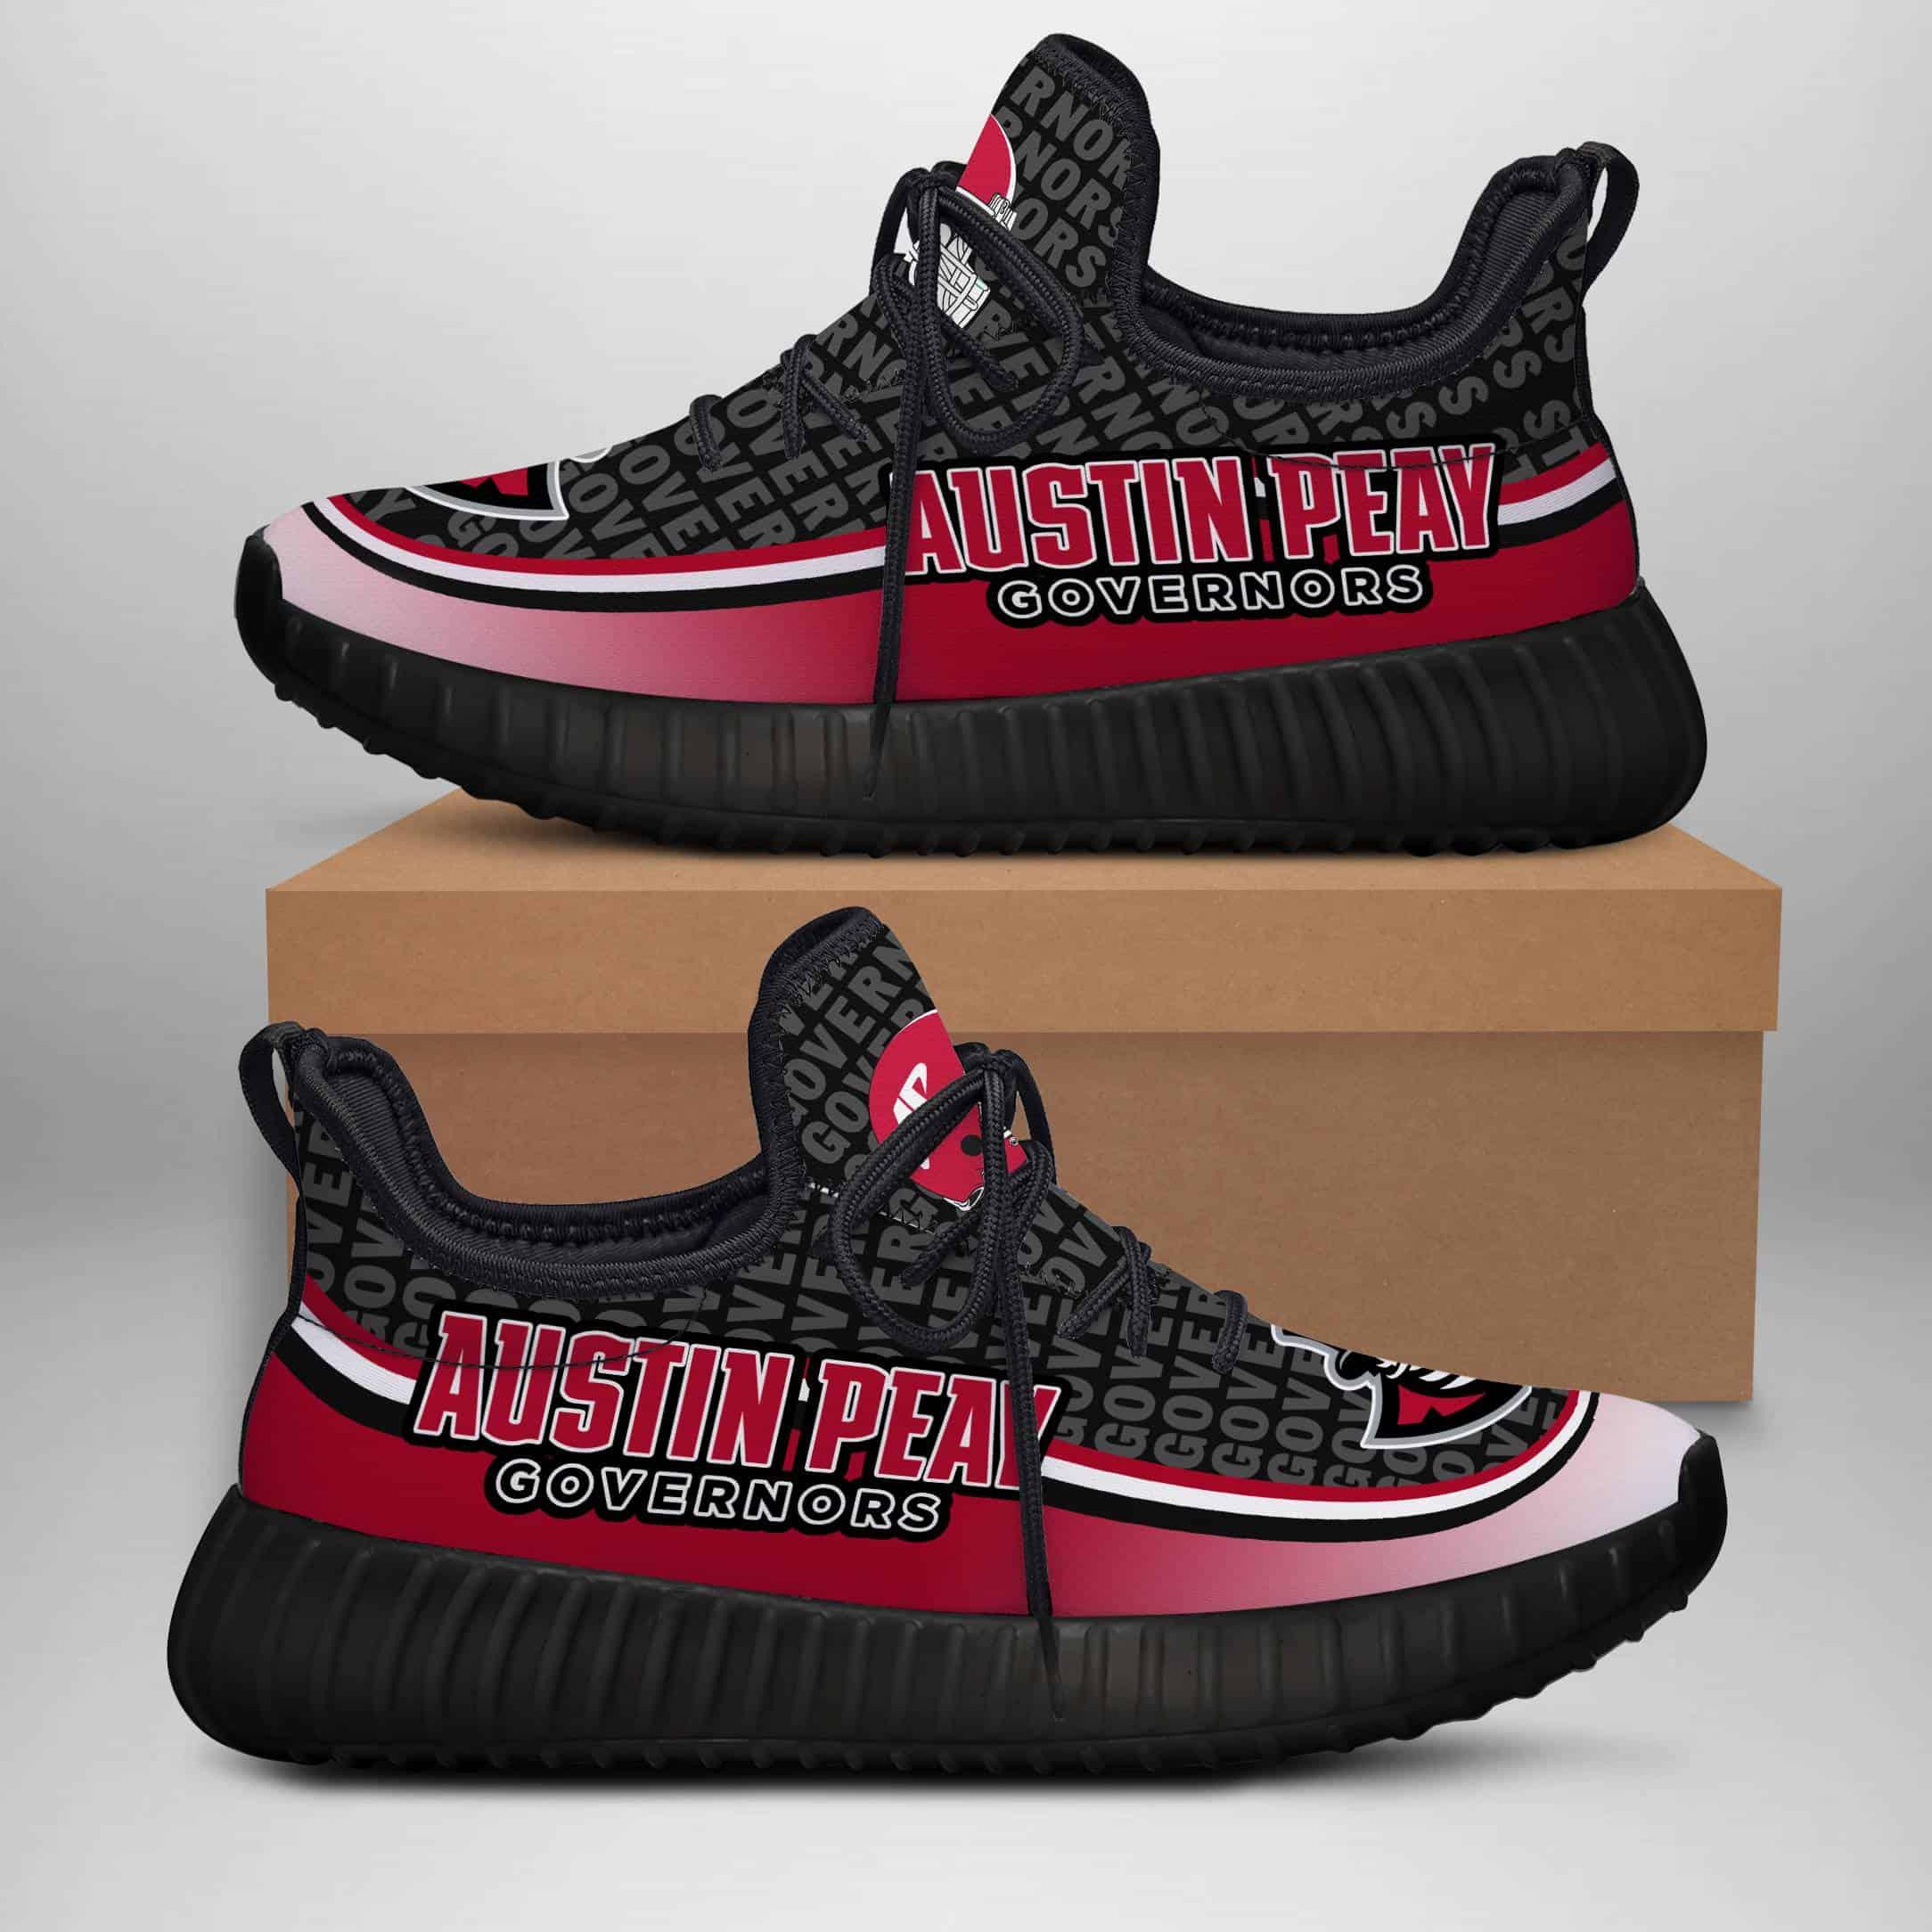 Austin Peay Governors New Sneaker